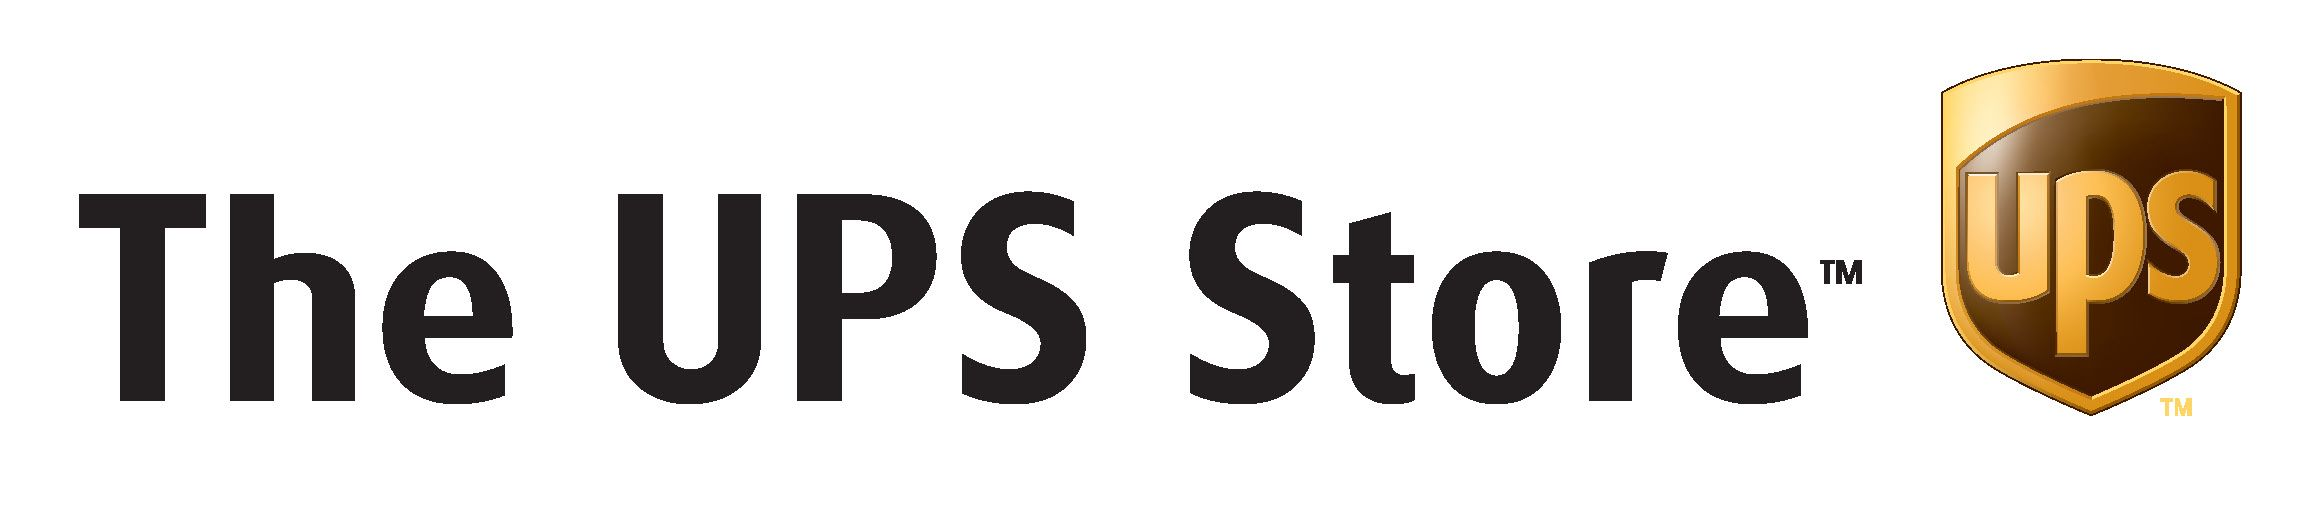 the ups store logo - Google Search